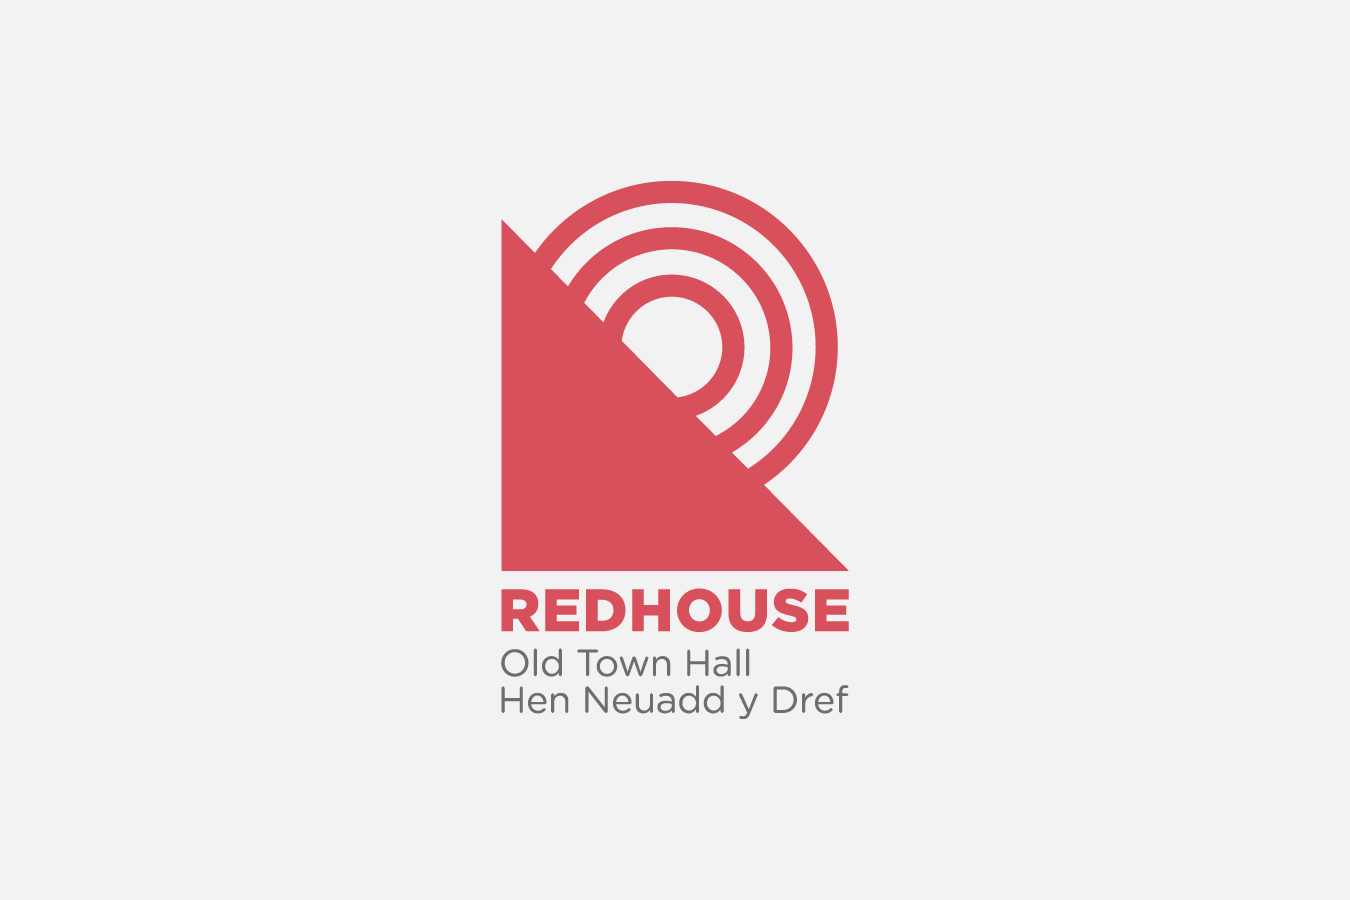 The REDHOUSE Brand Identity